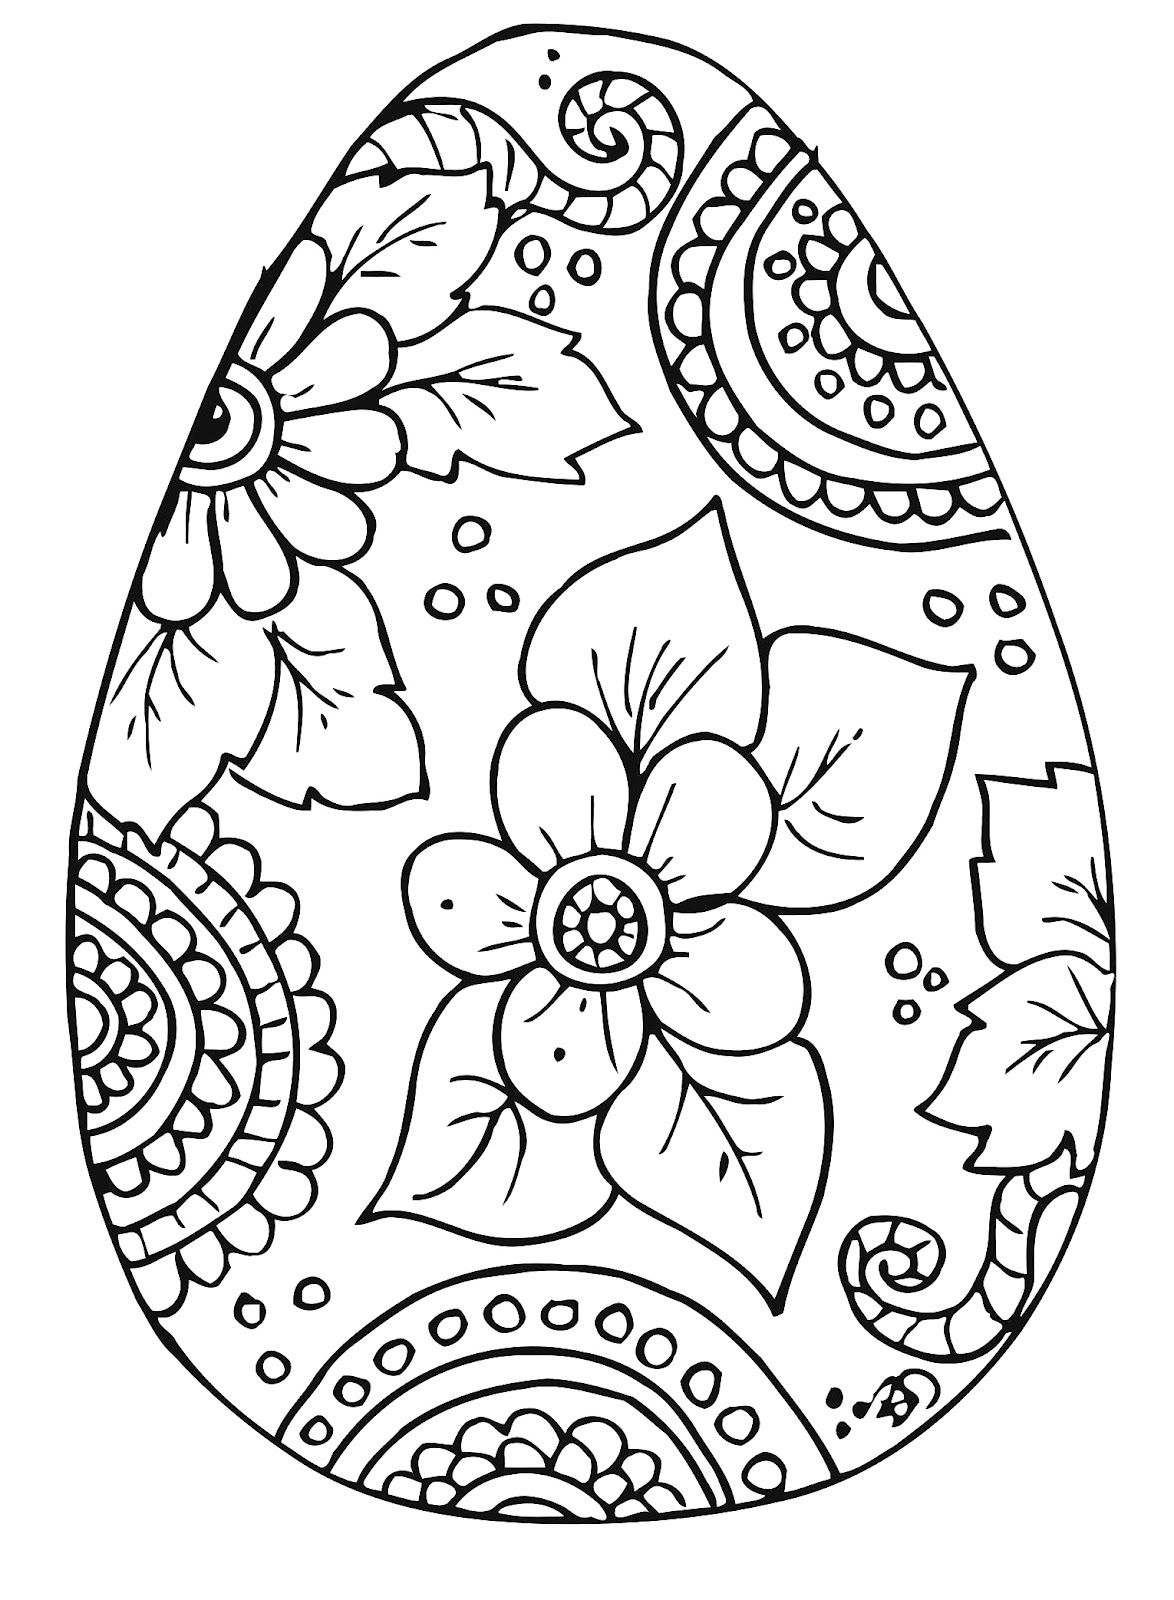 10 Cool Free Printable Easter Coloring Pages For Kids Who've Moved - Free Printable Easter Pages